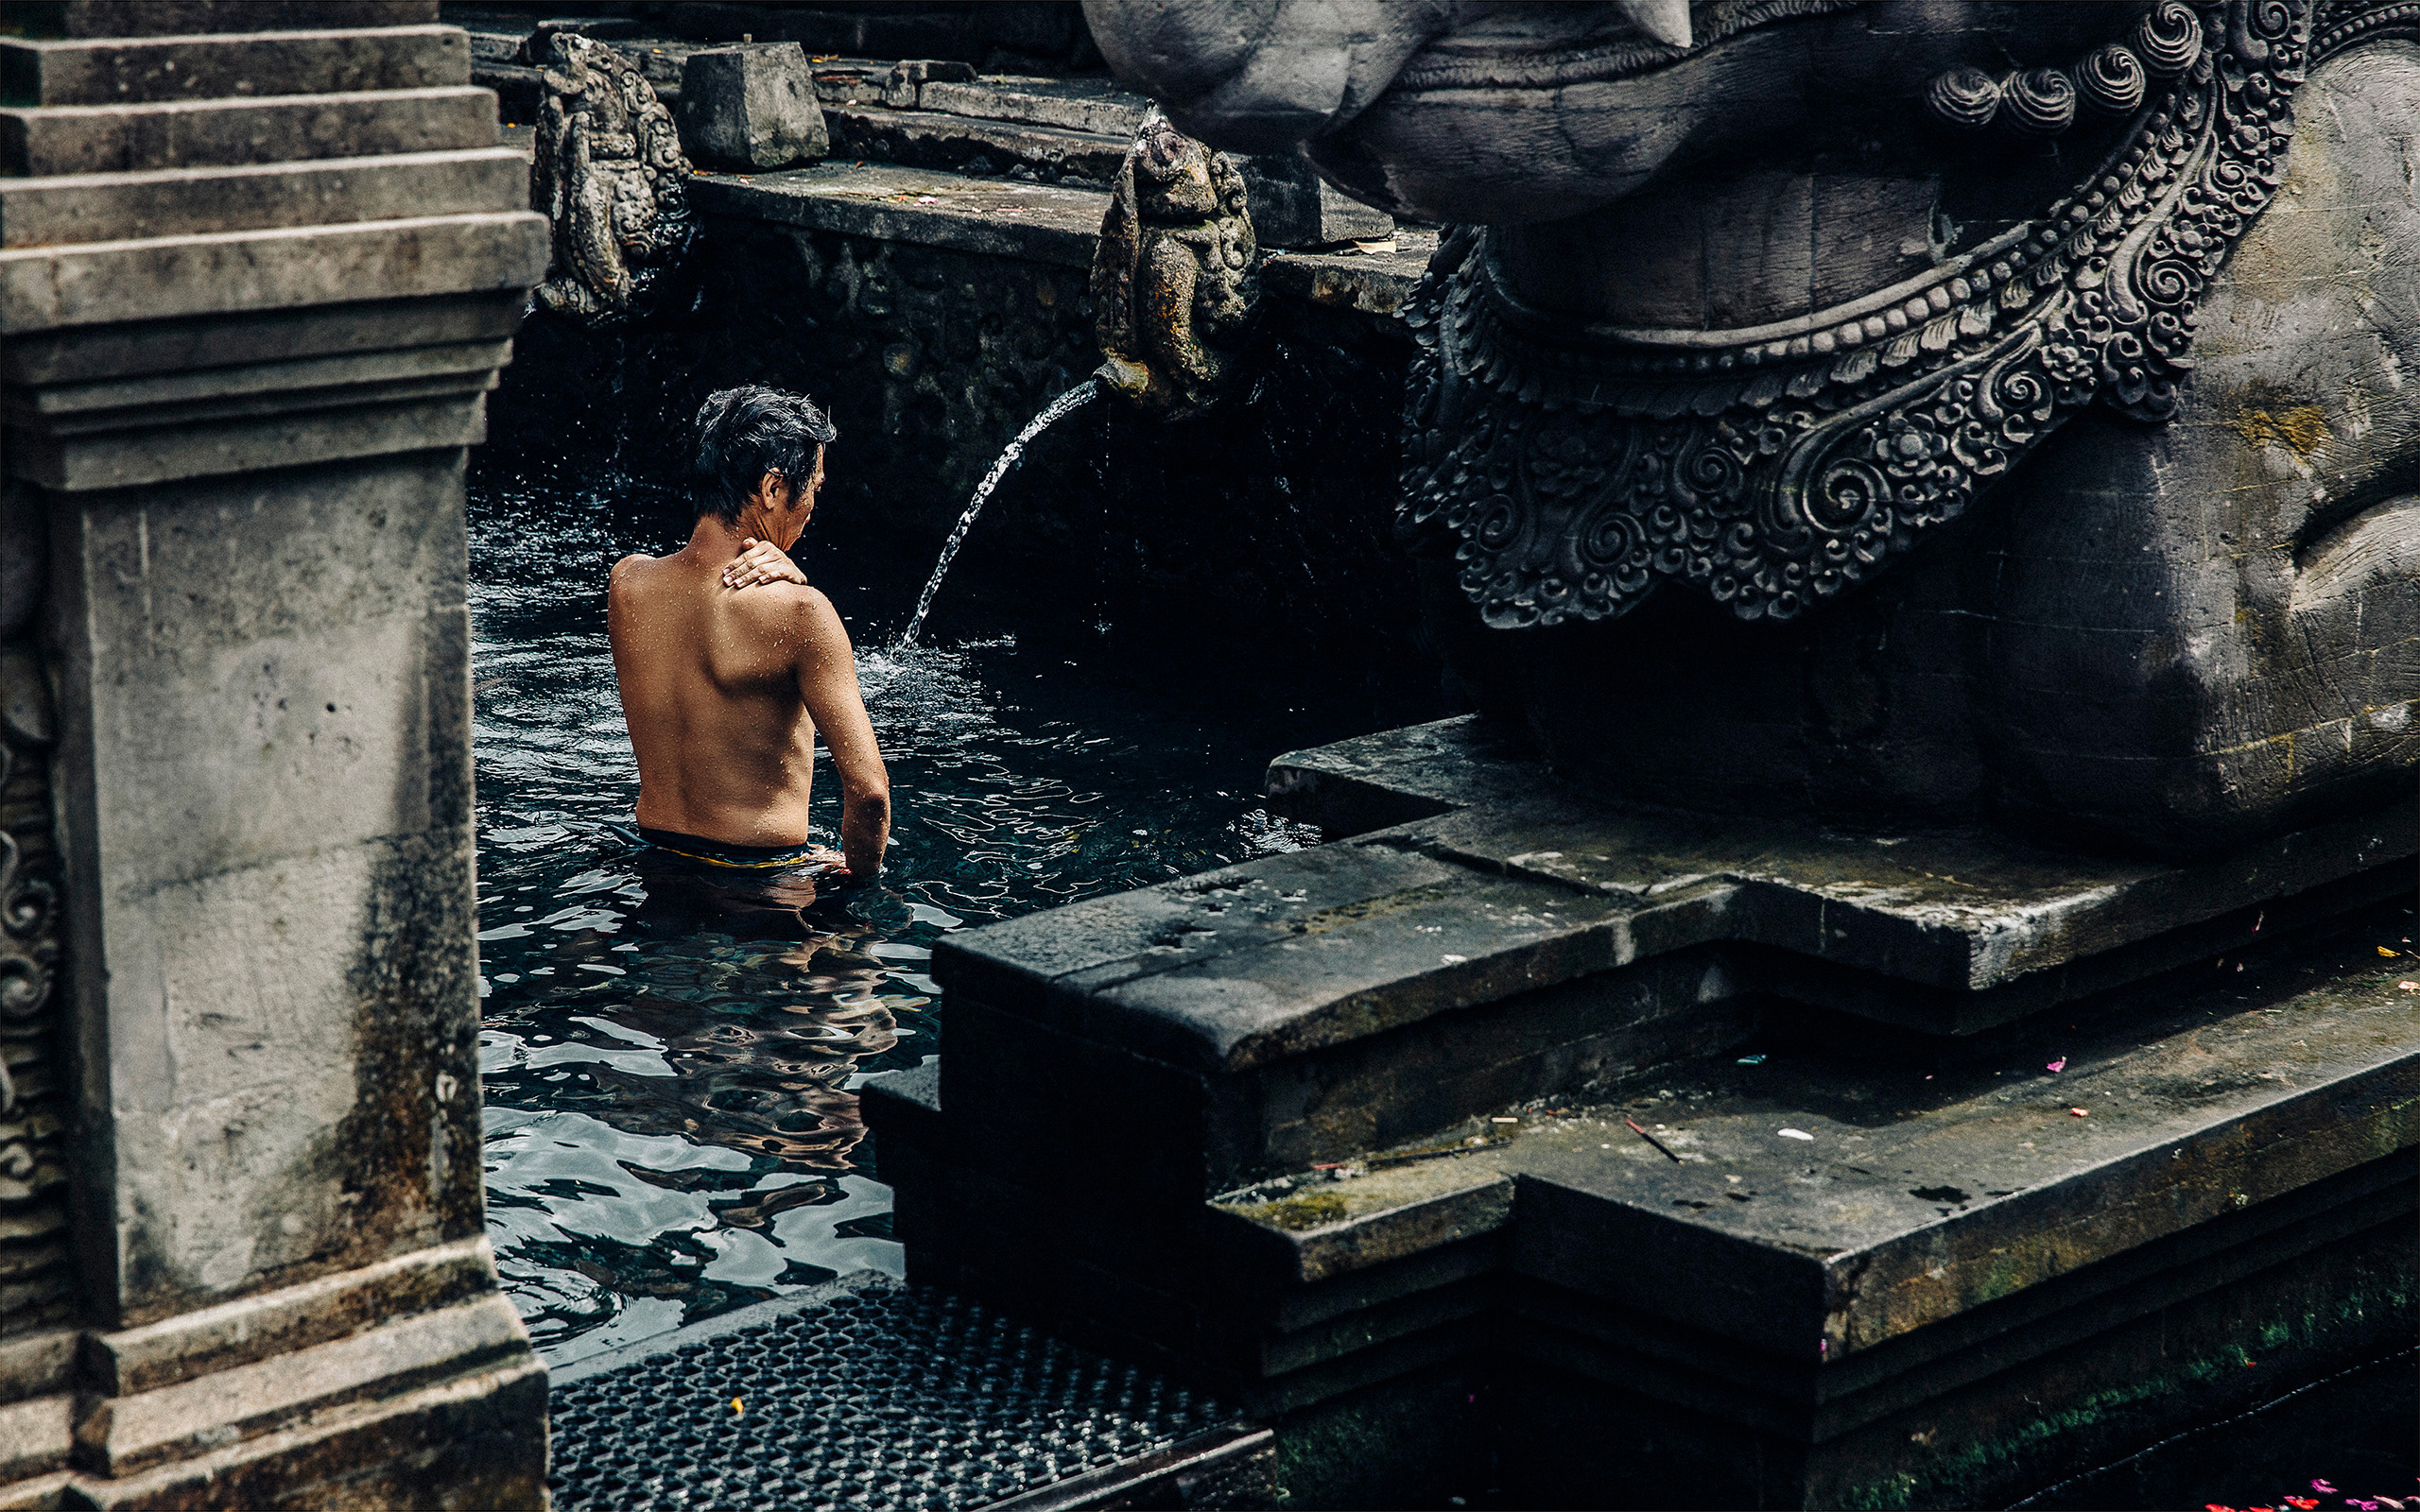 Fantastic Images of a Trip Through Bali